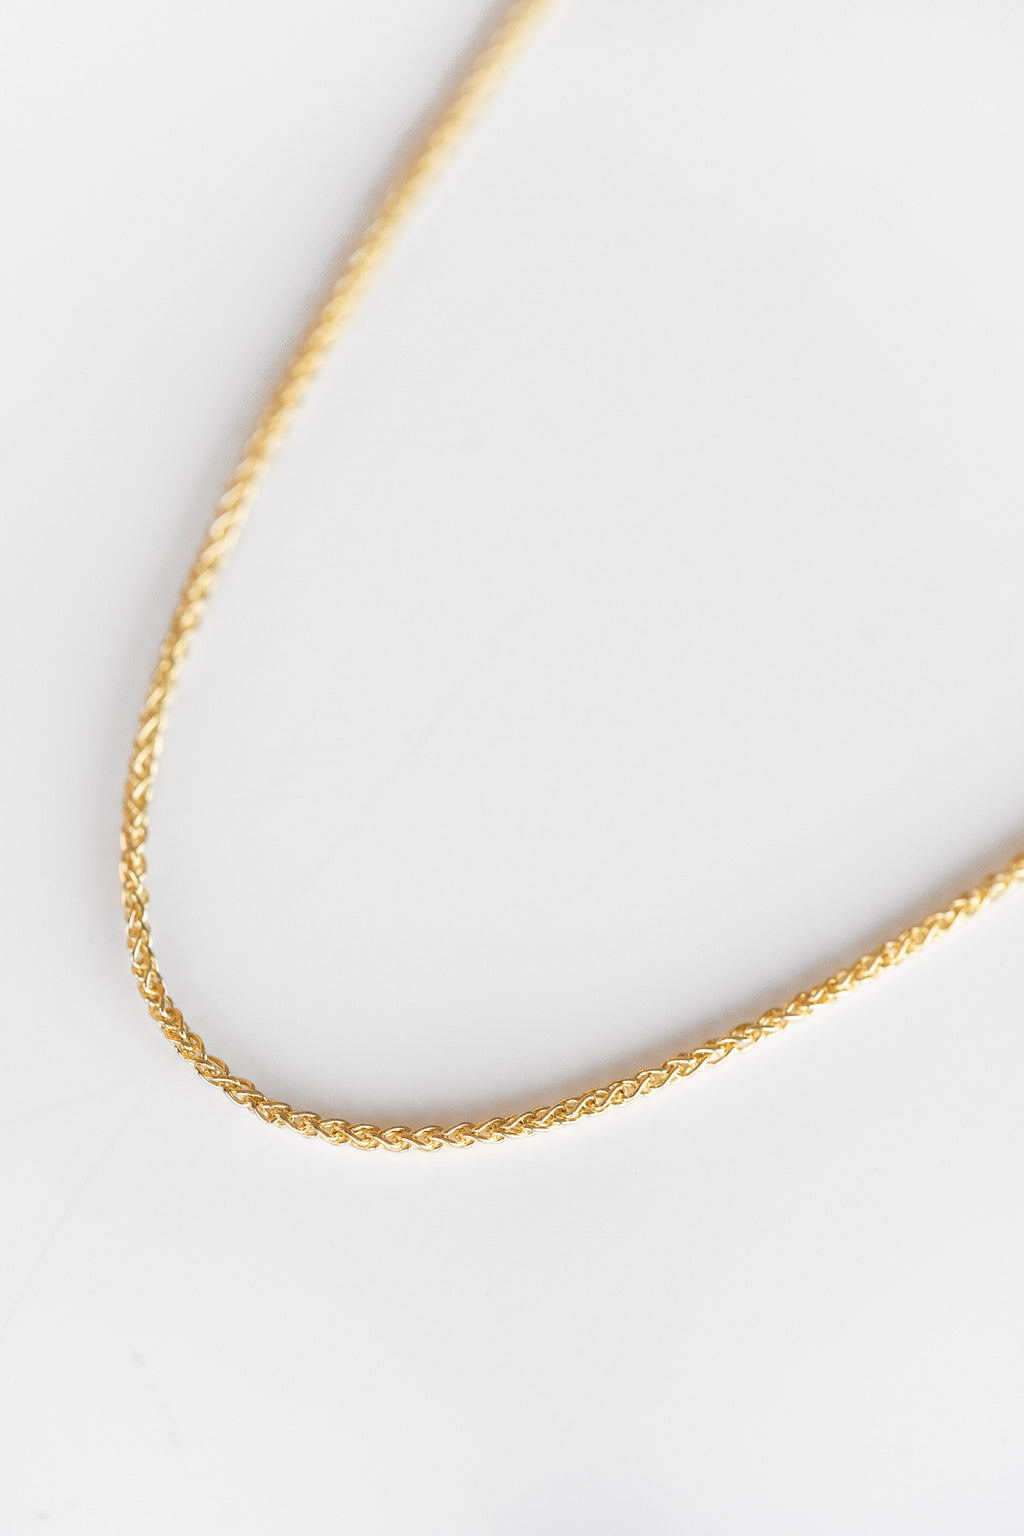 14K WHEAT CHAIN